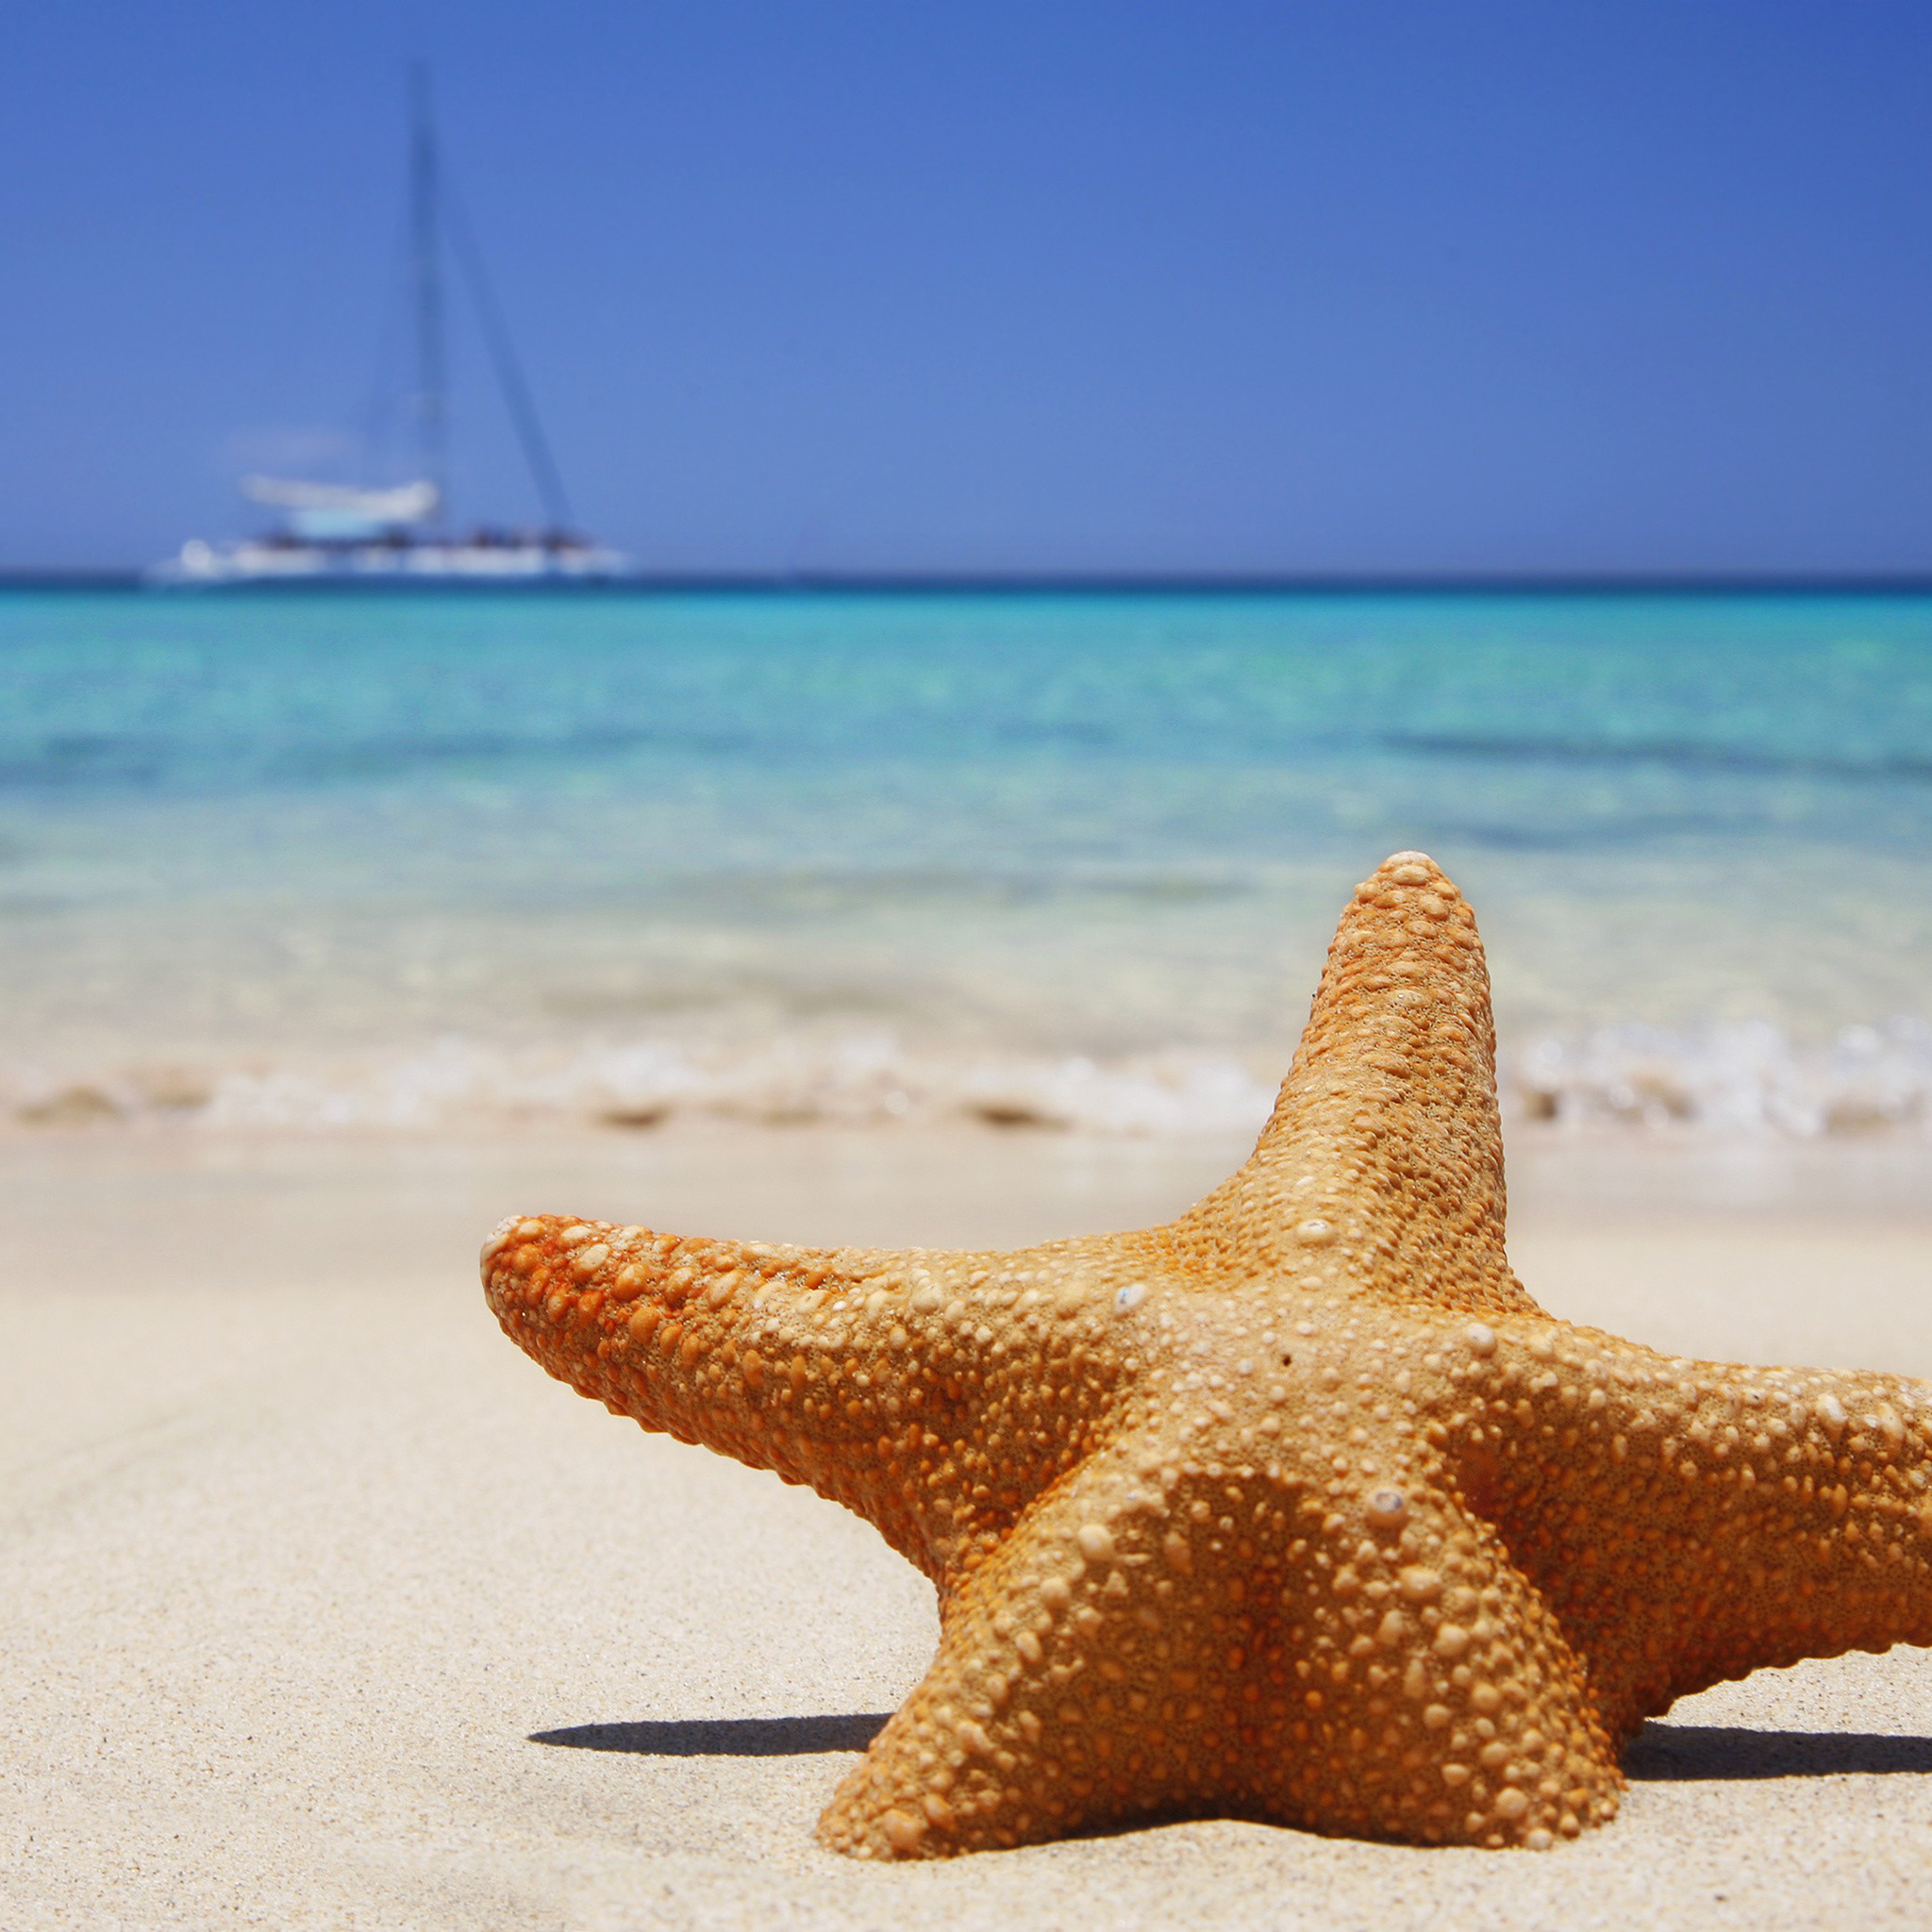 Starfish Beach 3Wallpapers iPad Retina Starfish Beach   iPad Retina